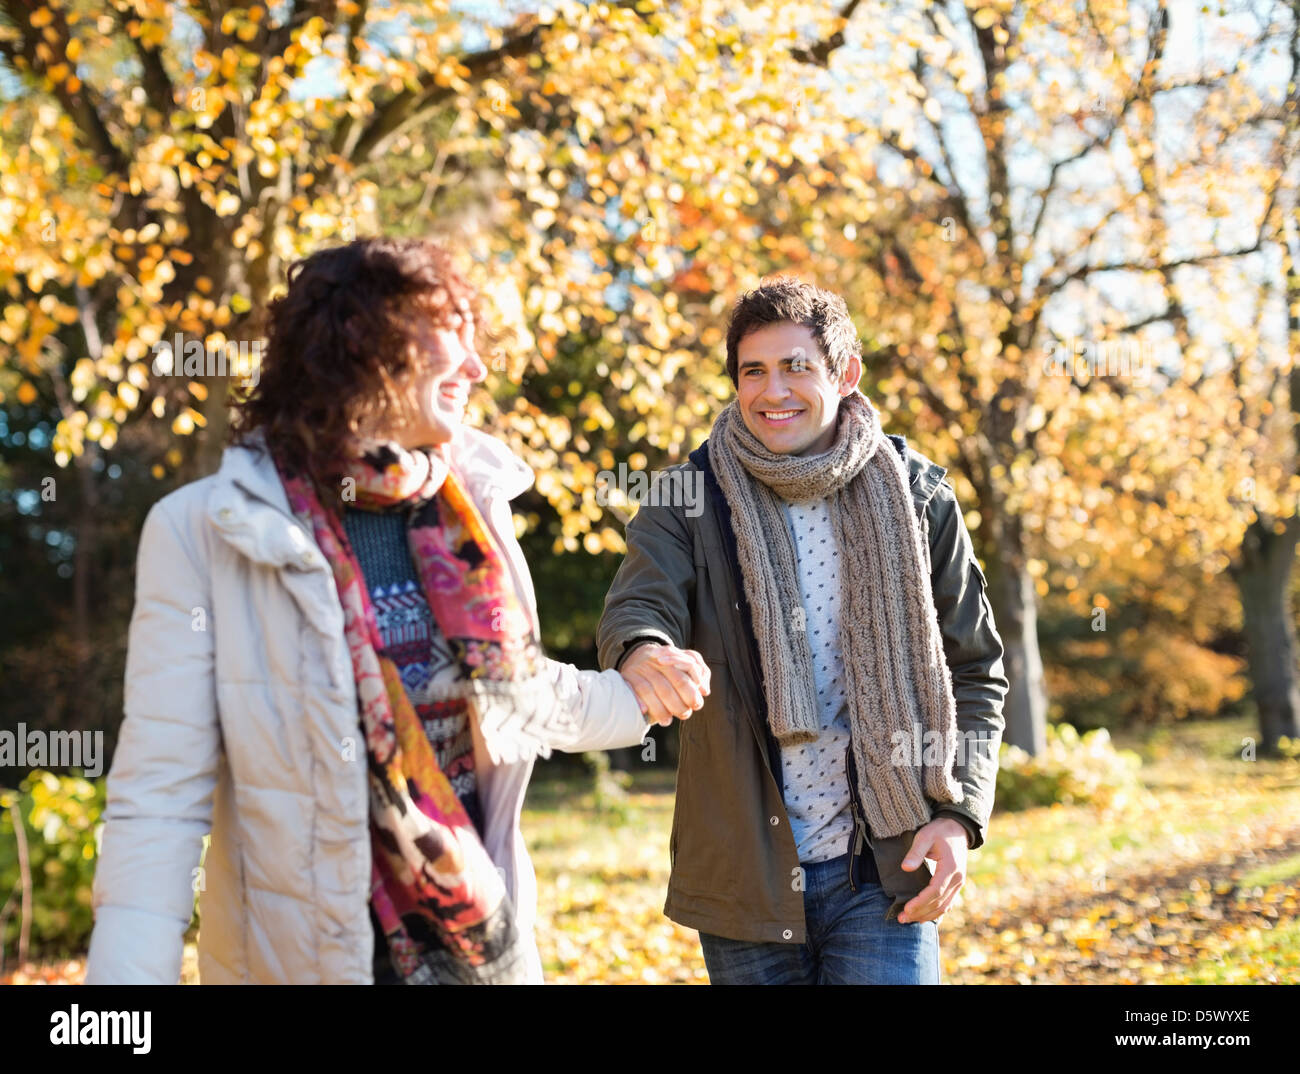 Couple holding hands in park - Stock Image